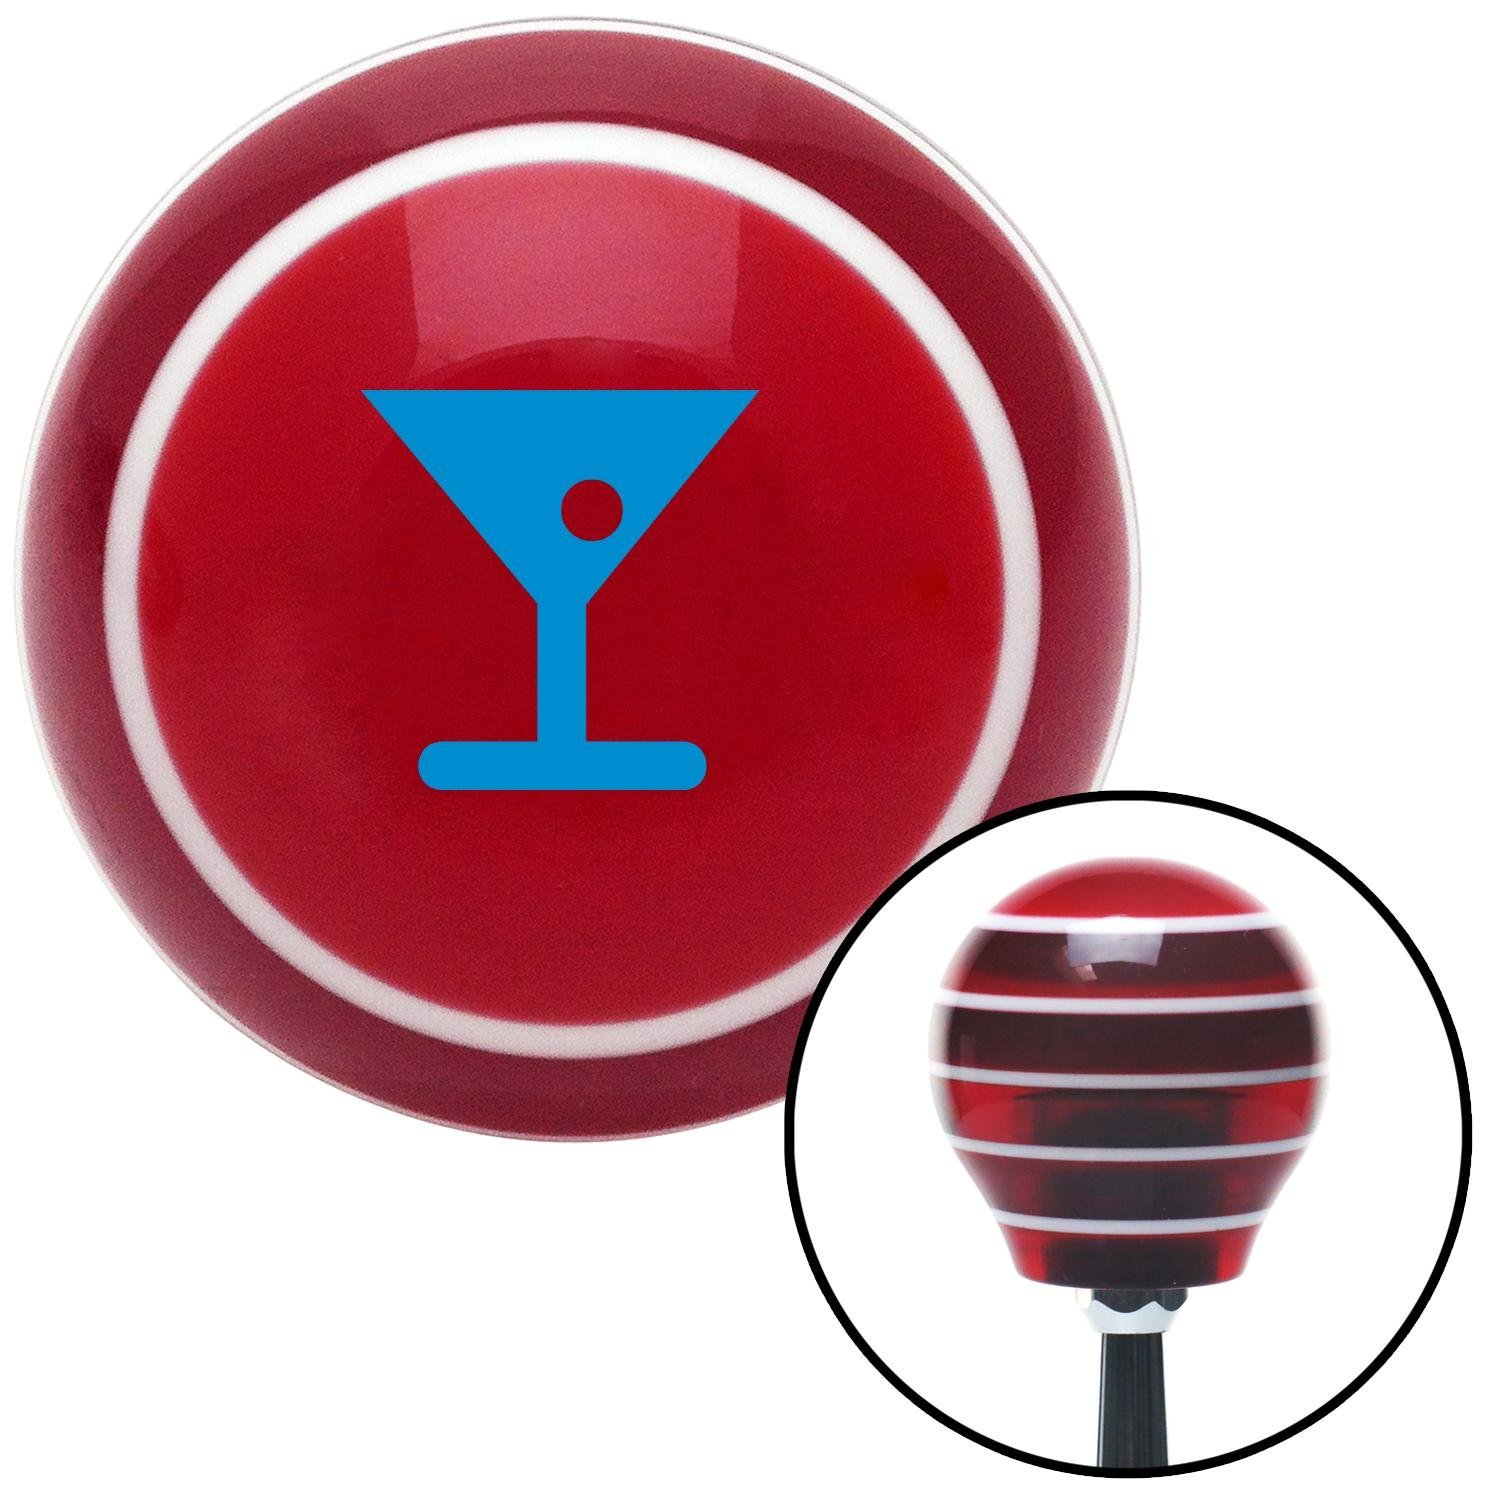 Blue Martini Glass w//Olive American Shifter 113050 Red Stripe Shift Knob with M16 x 1.5 Insert